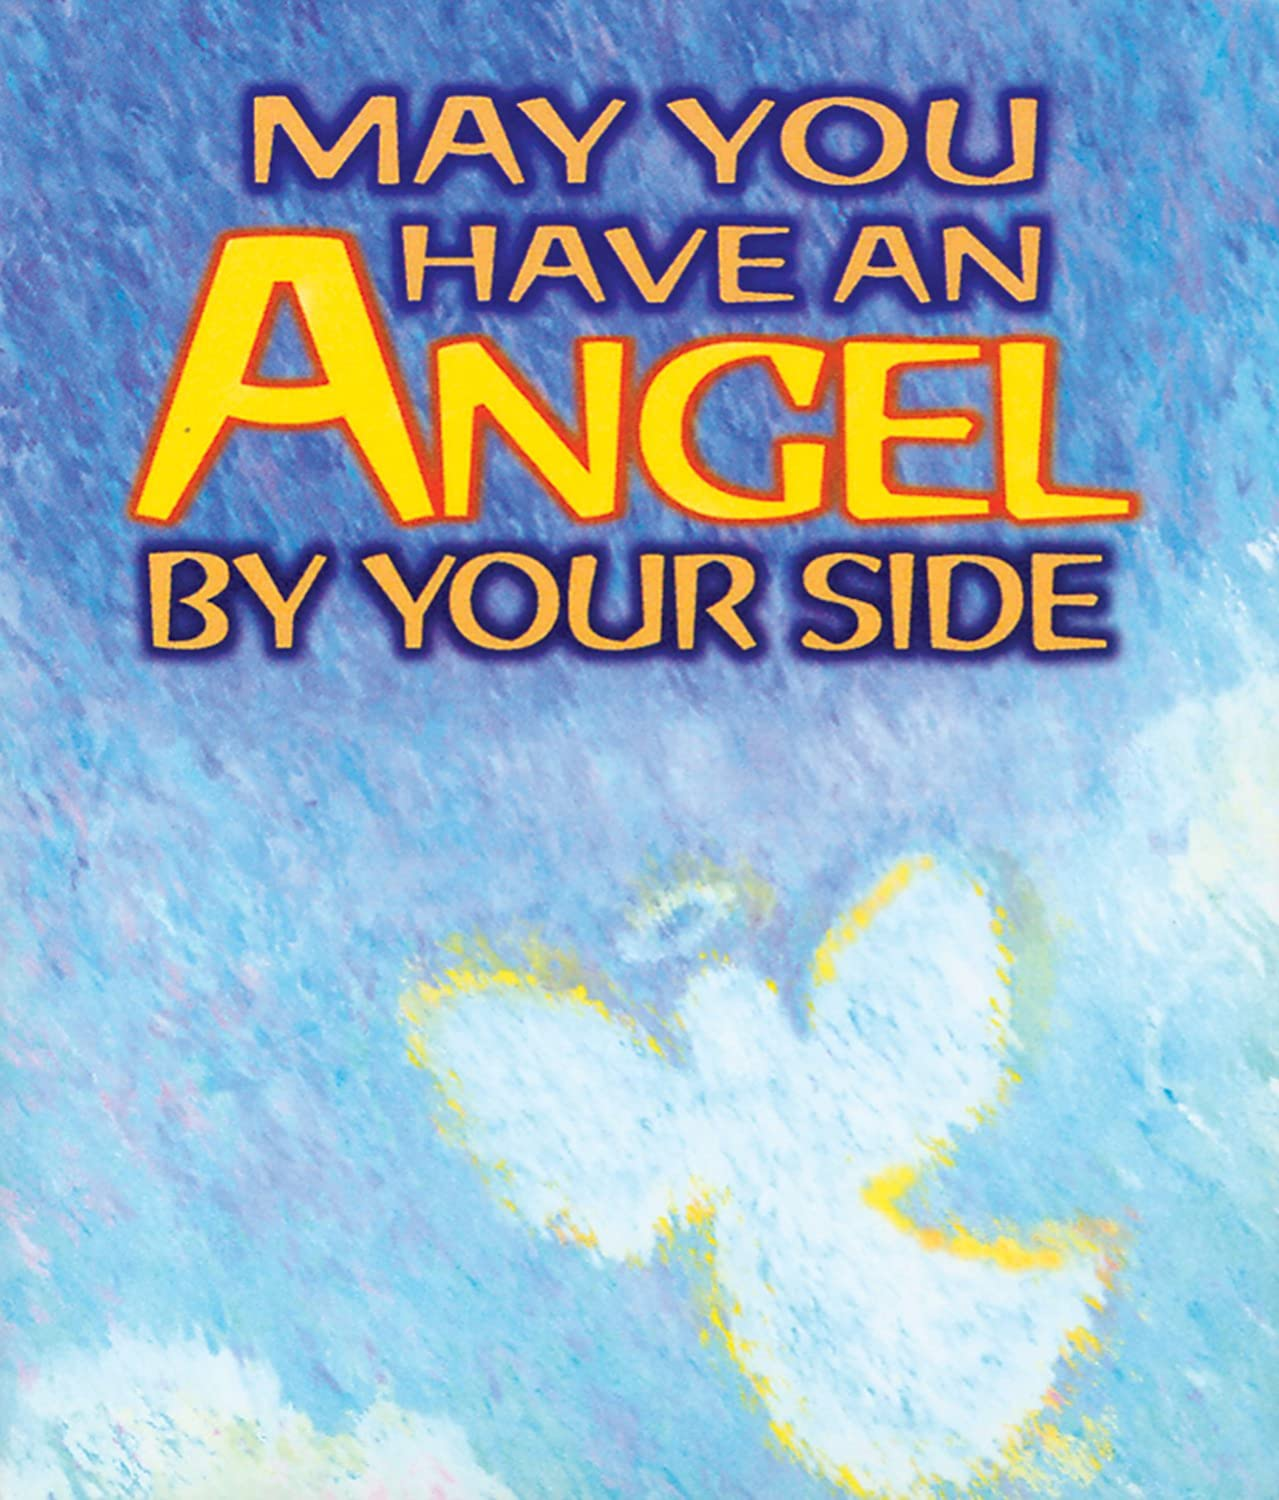 Little Keepsake Book May You Always Have an Angel by Your Side 2.75 x 3.25 2.75 x 3.25 Blue Mountain Arts KB207